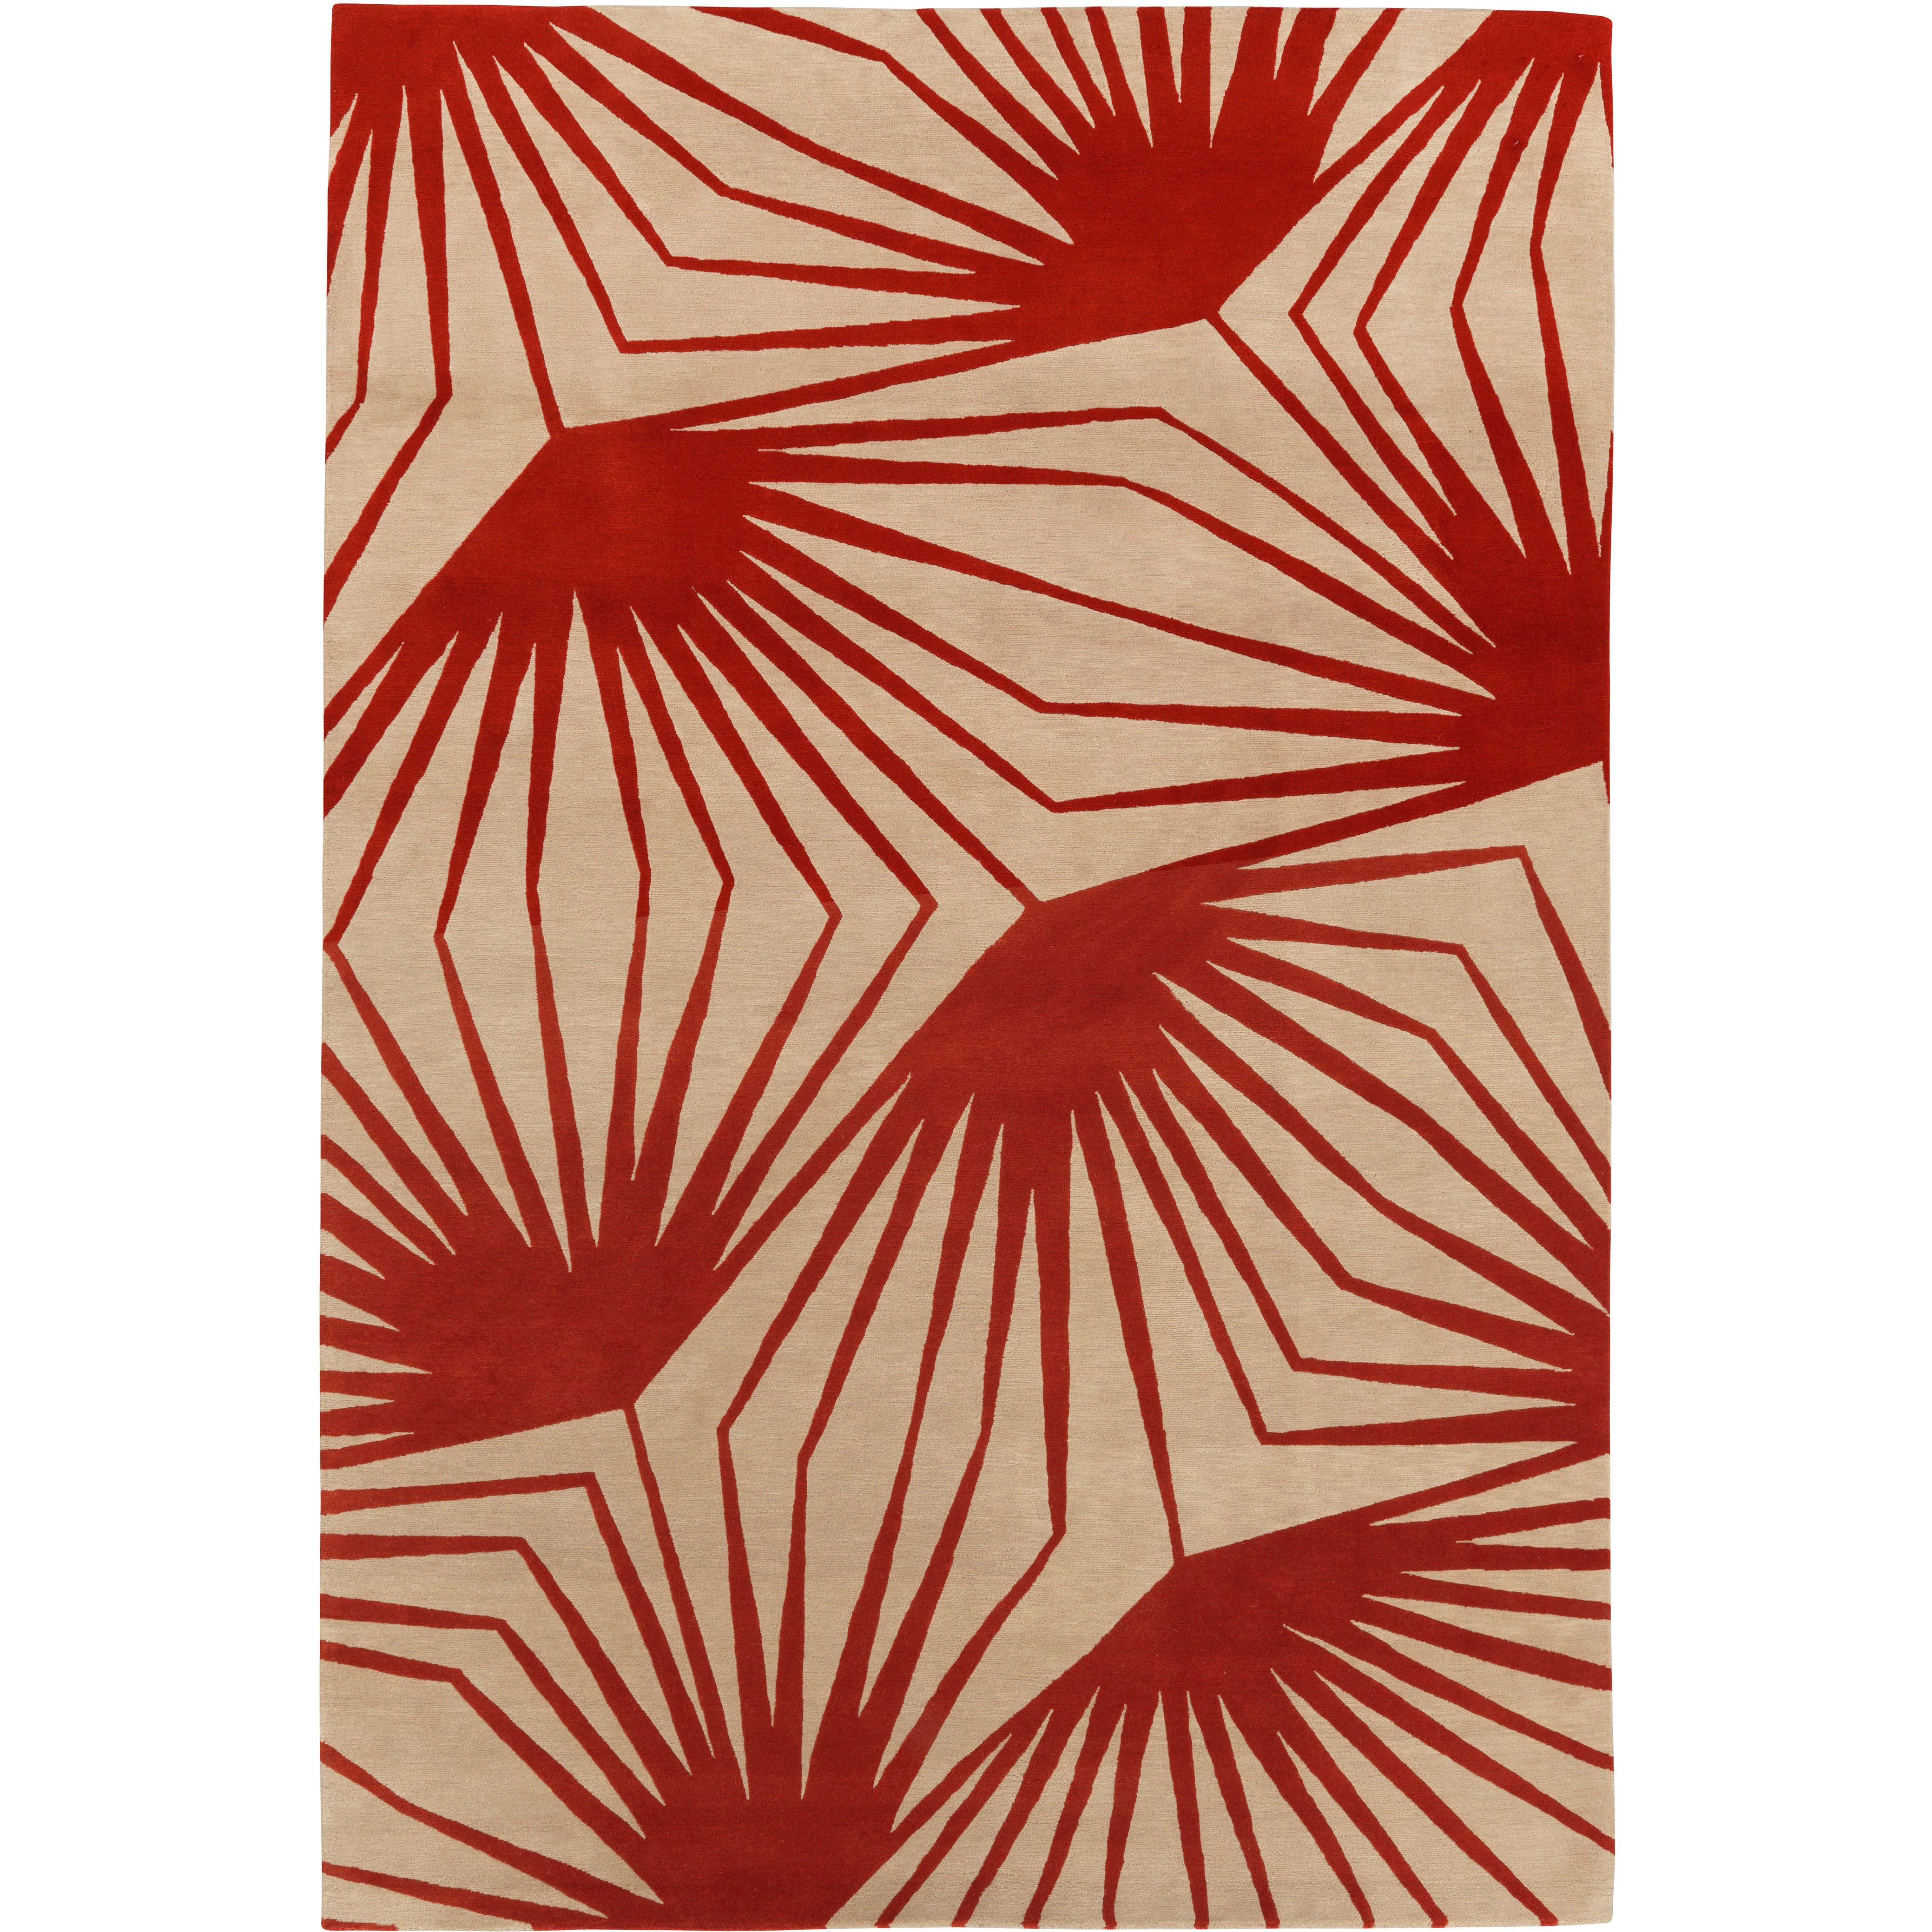 Stingray Red Hand-Knotted 10x8 Area Rug in Wool by Alexandra Champalimaud